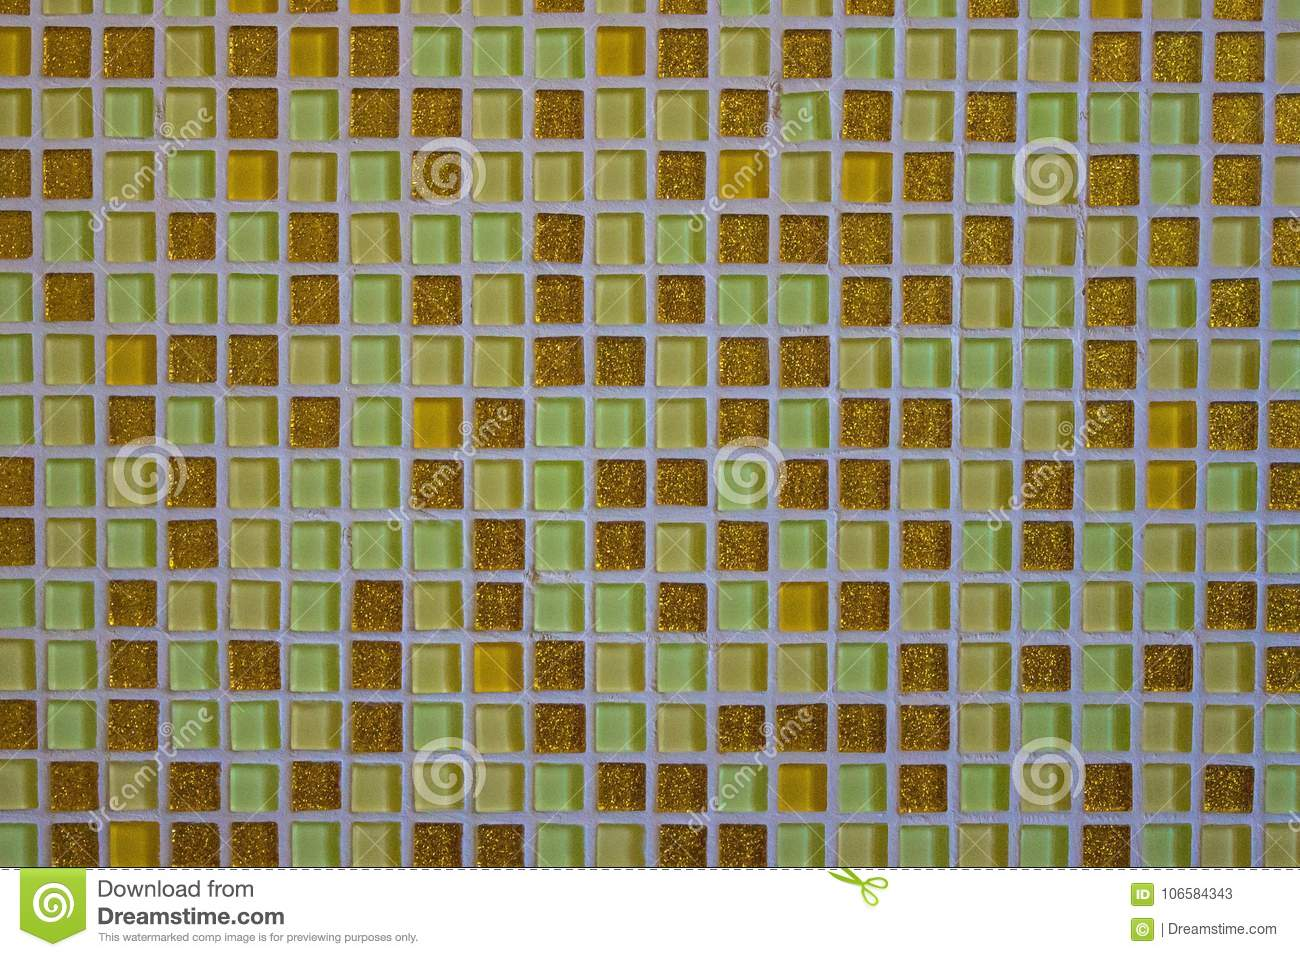 Mosaic of small square tiles.